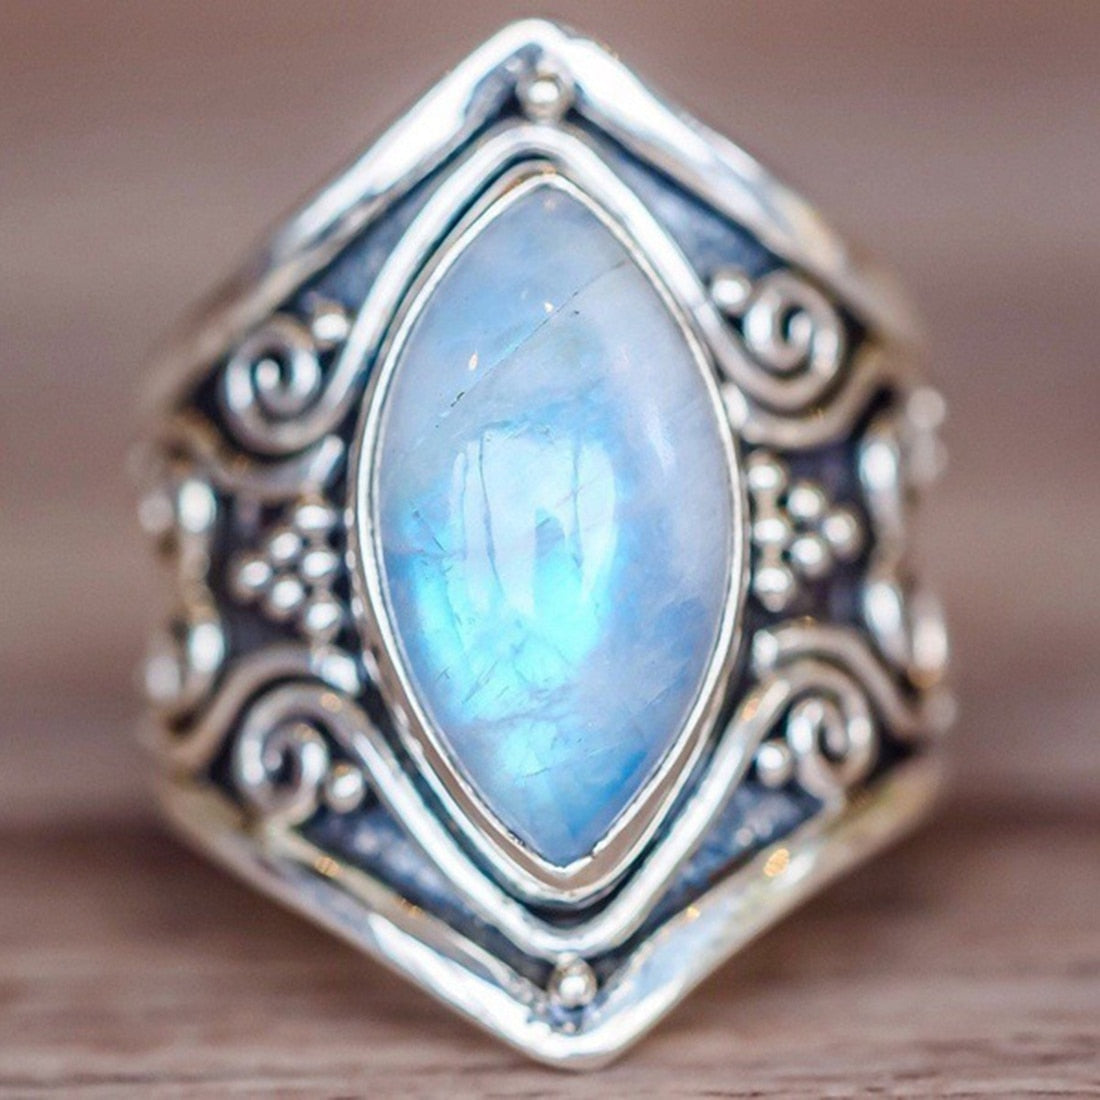 Antique ring with decoration and big sky blue stone front picture